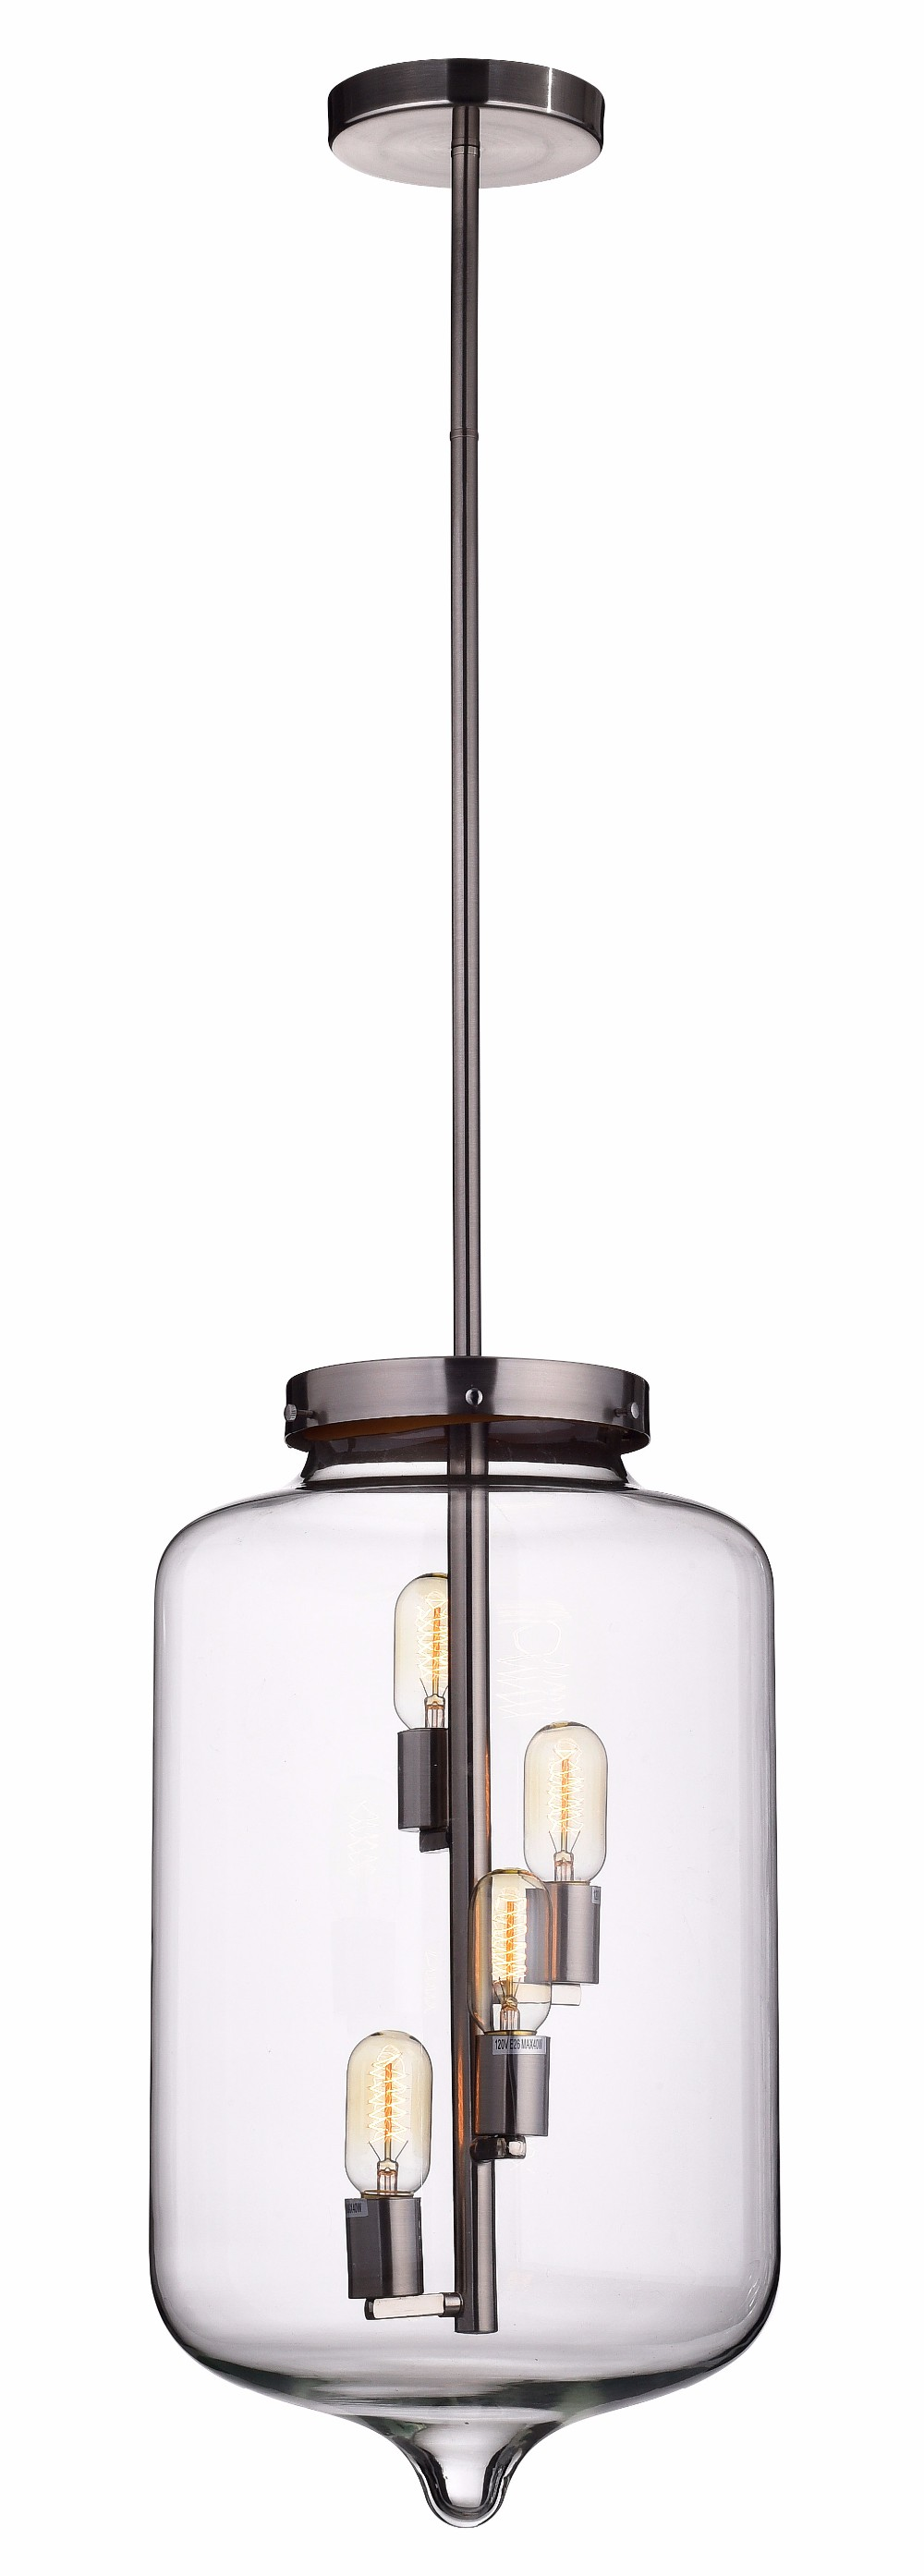 American style loft vintage dining light modern Industrial chandelier glass pendant lamp